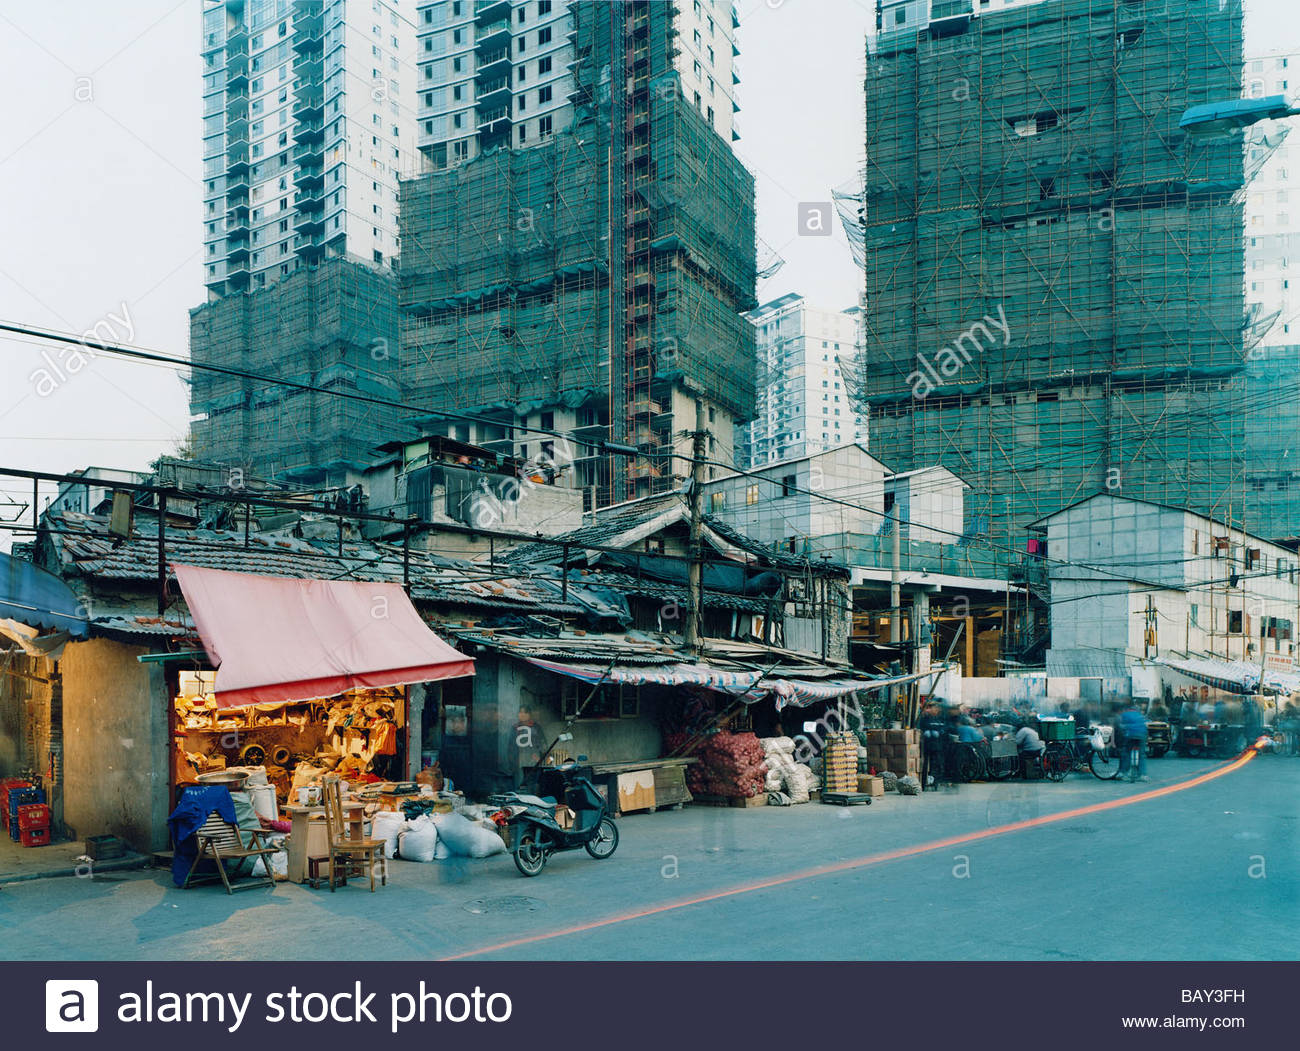 Area is being demolished, Houses, Longtangs are being demolished to make way for new skyscraper buildings, Urban Stock Photo